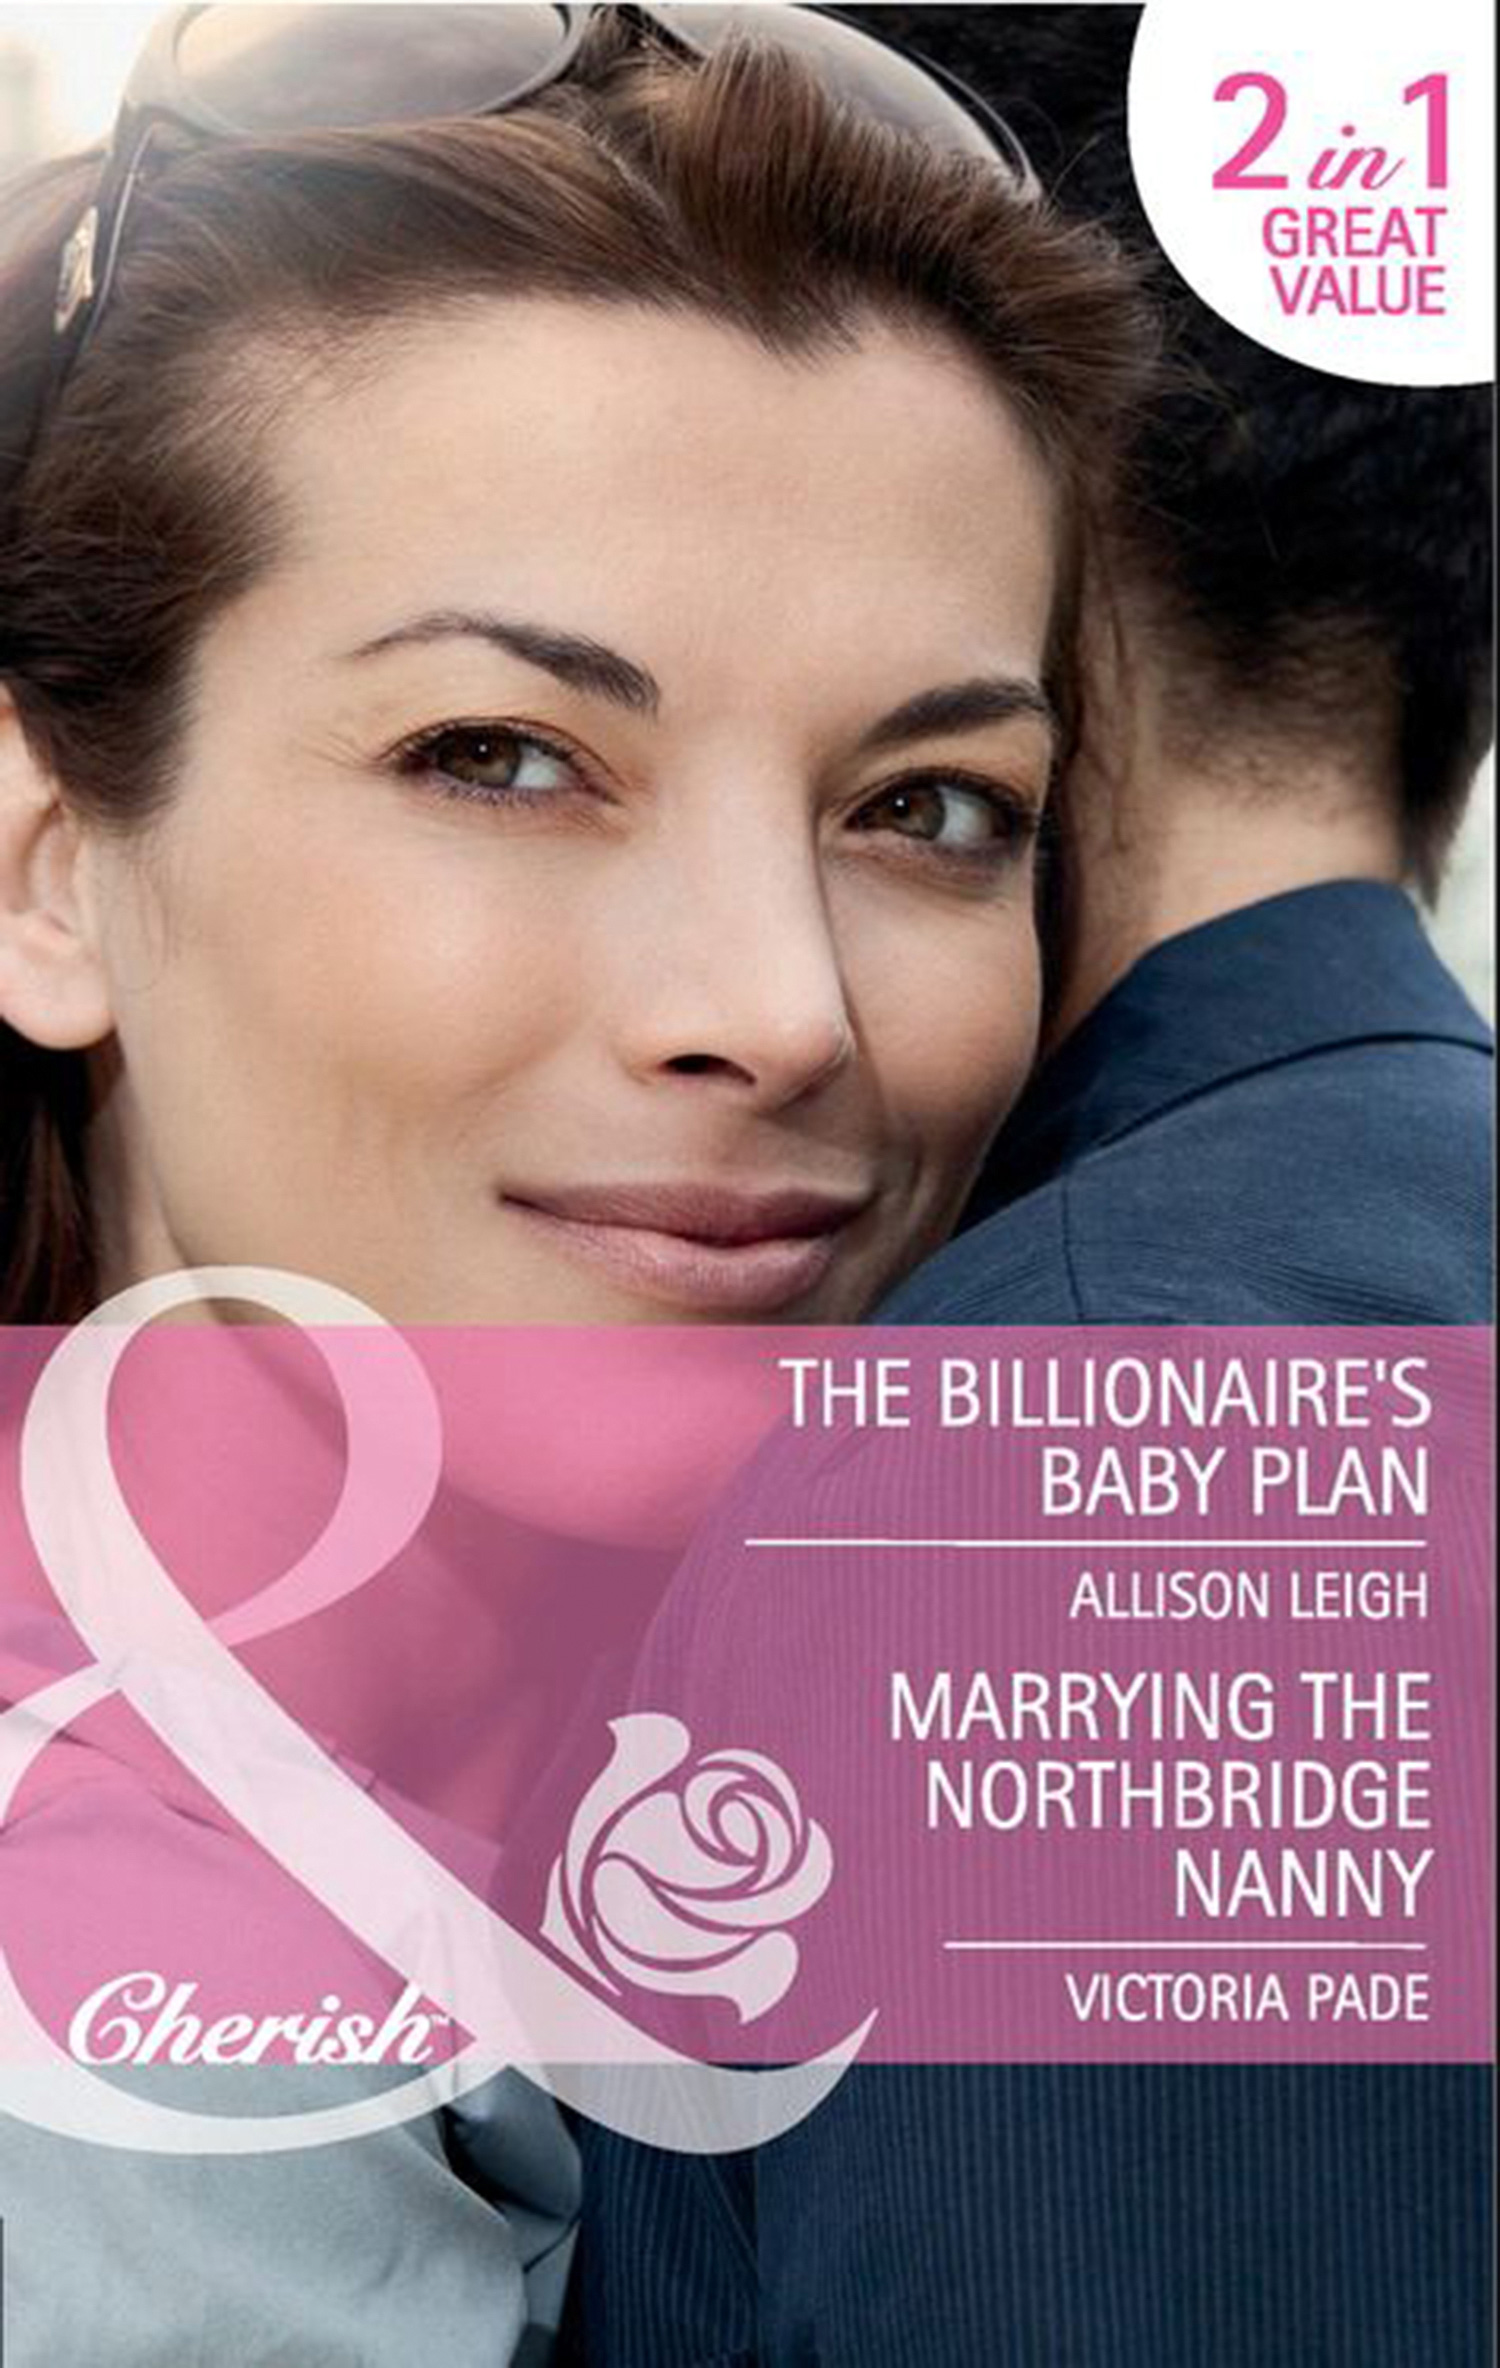 The Billionaire's Baby Plan / Marrying the Northbridge Nanny